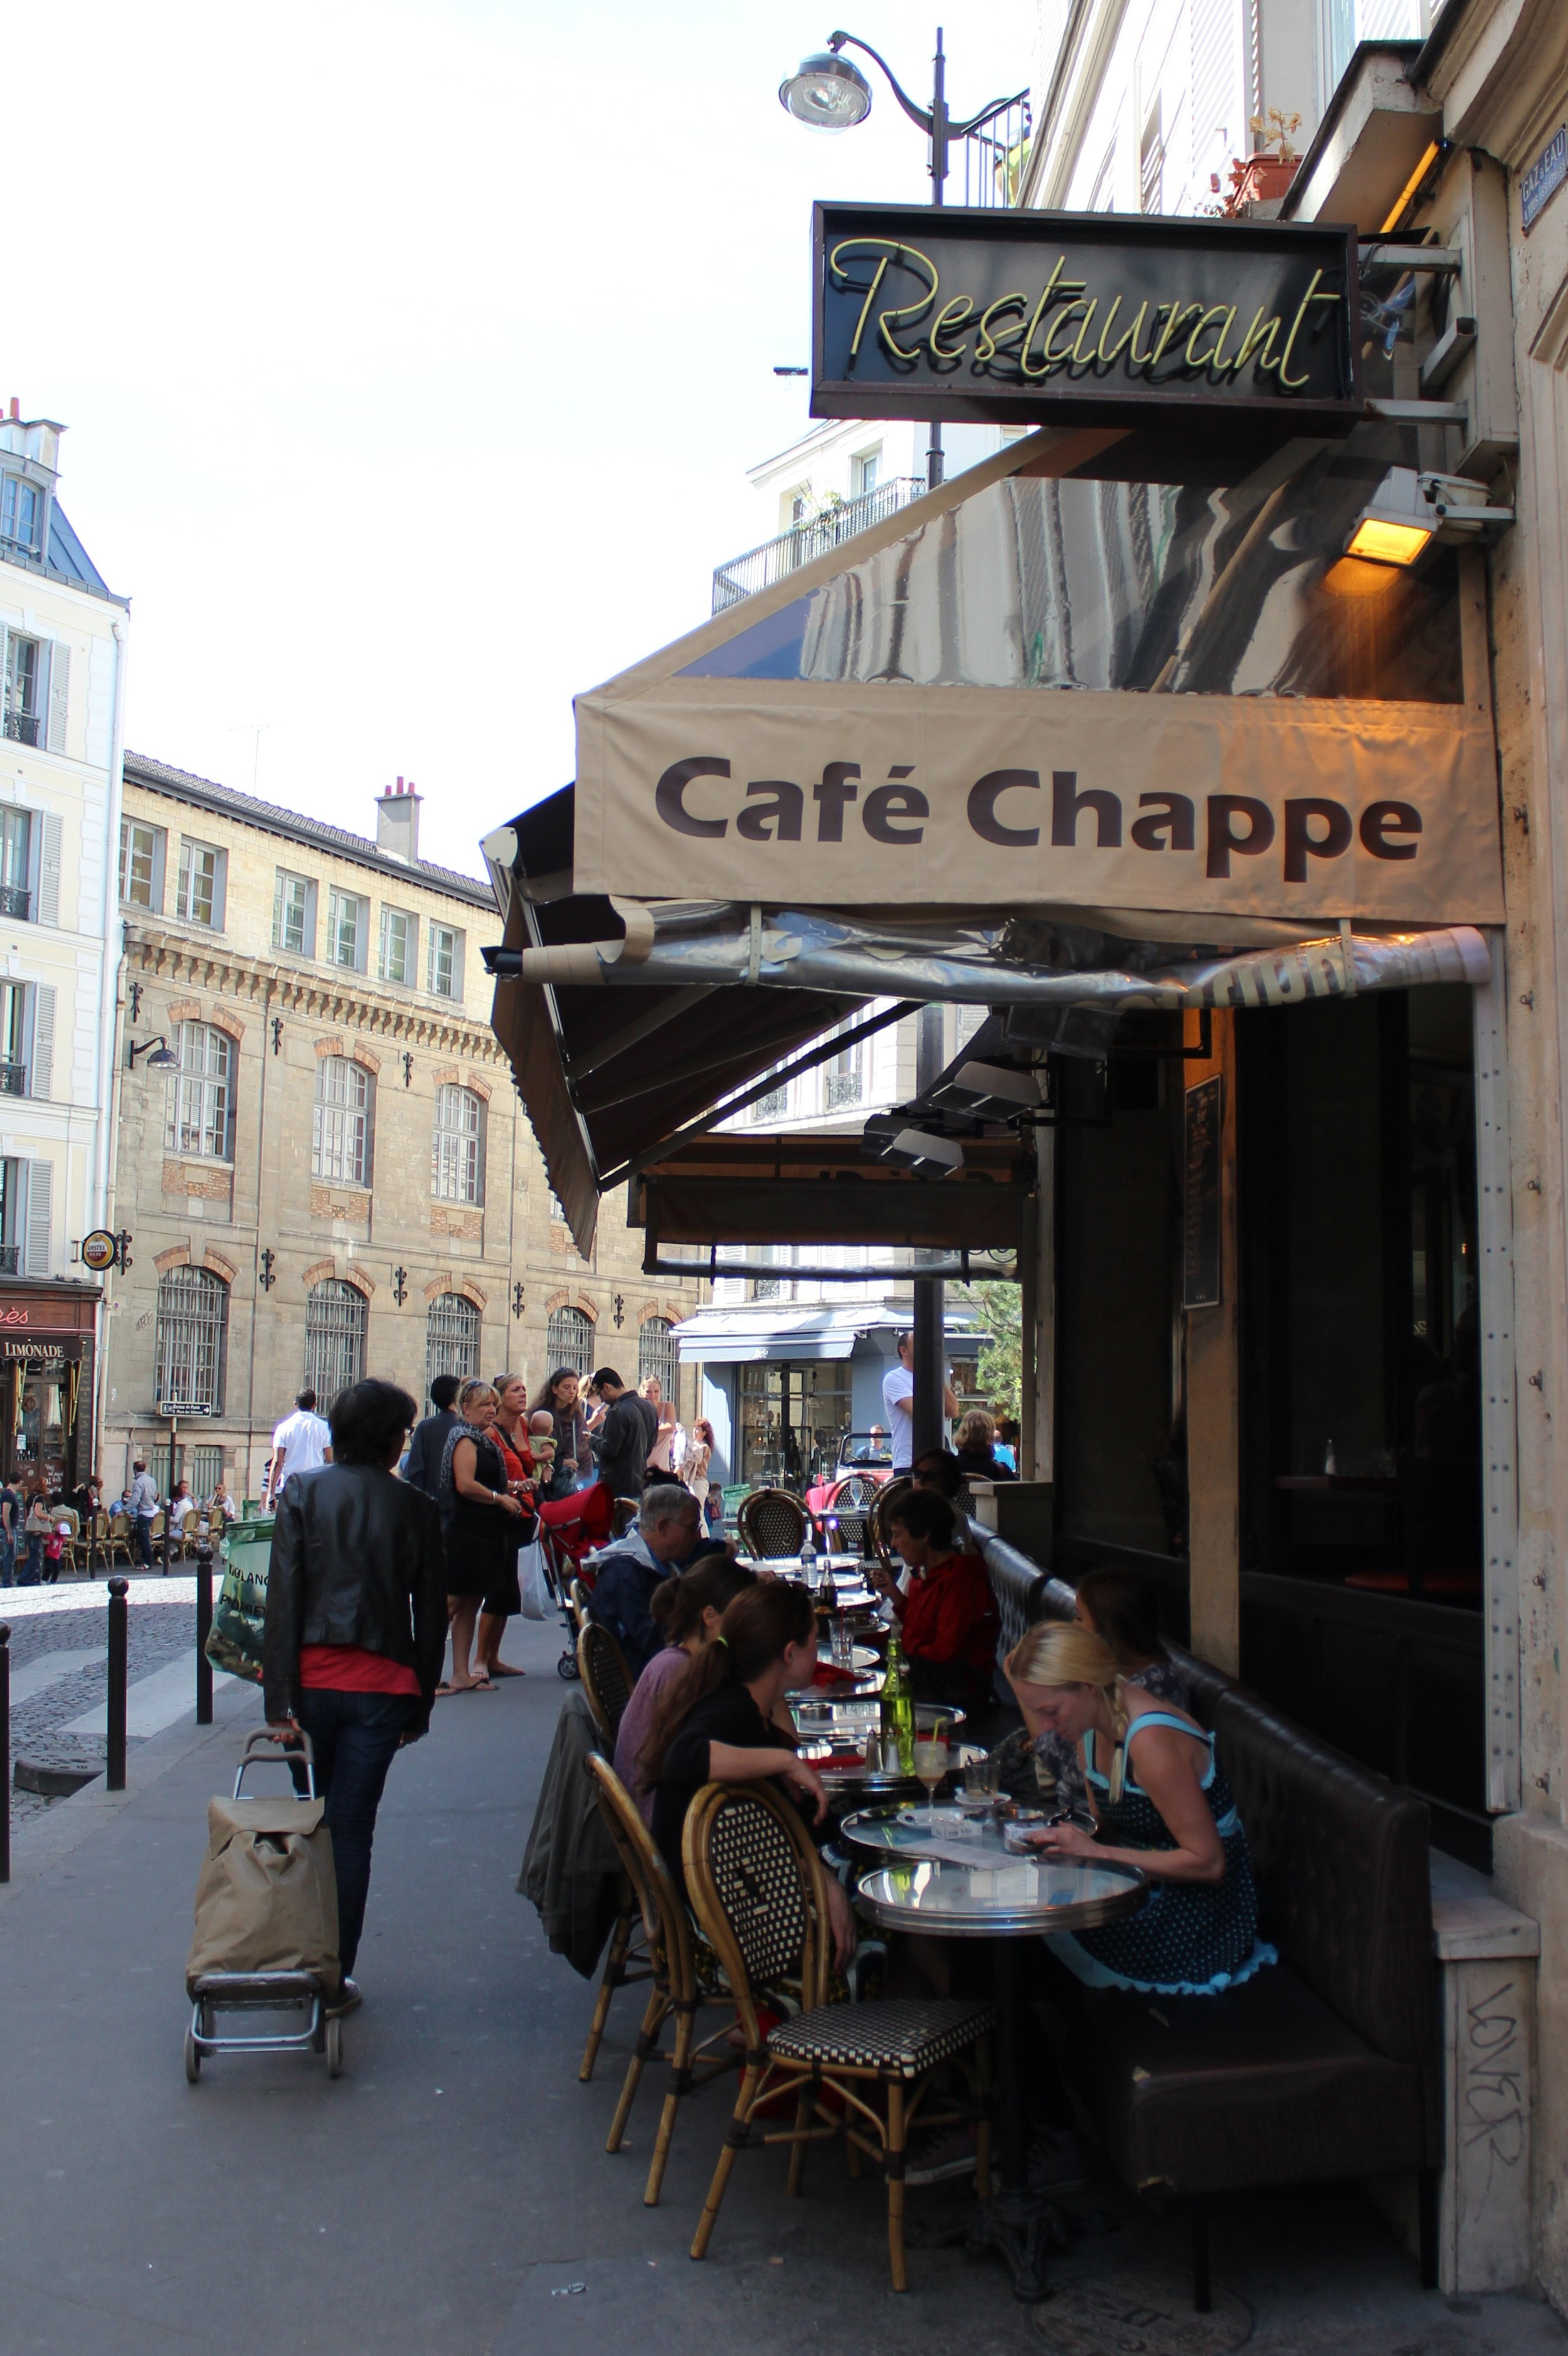 Cafe Chappe